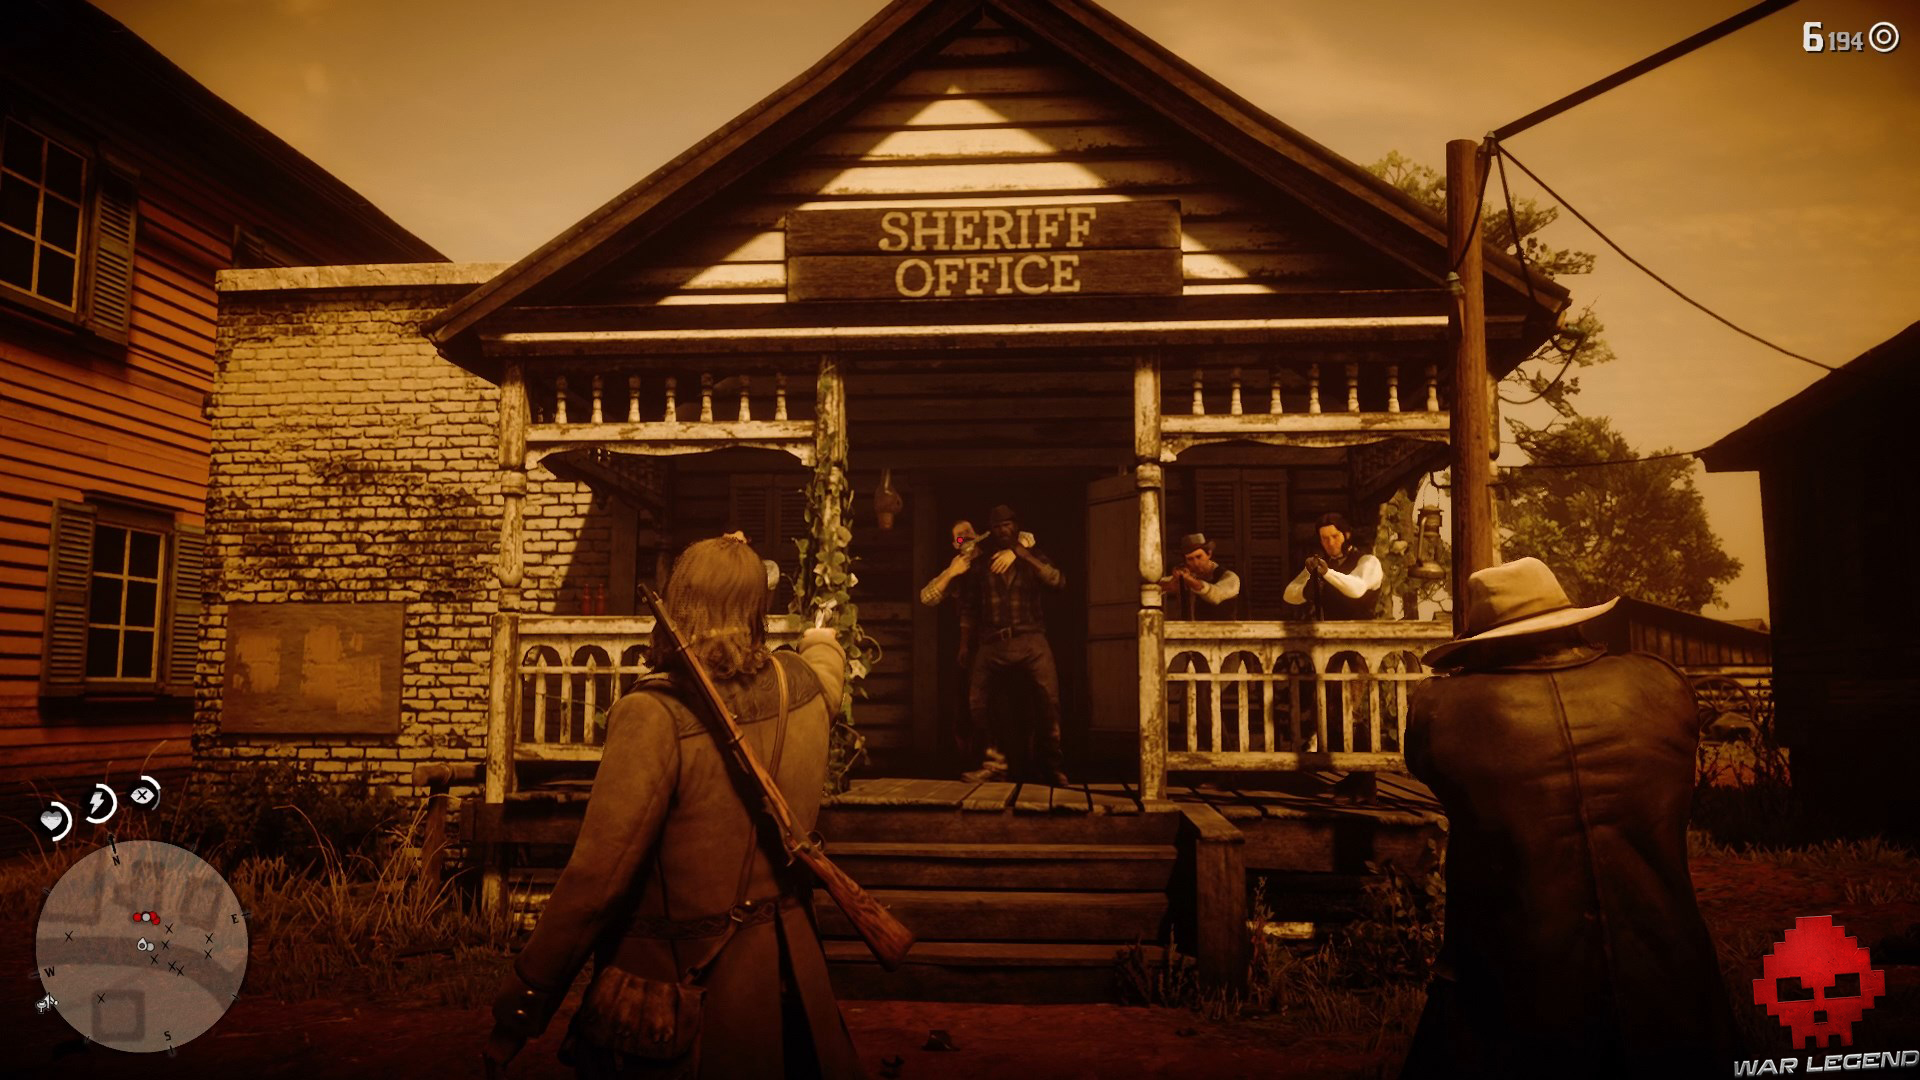 test red dead redemption 2 une ville pittoresque sang-froid